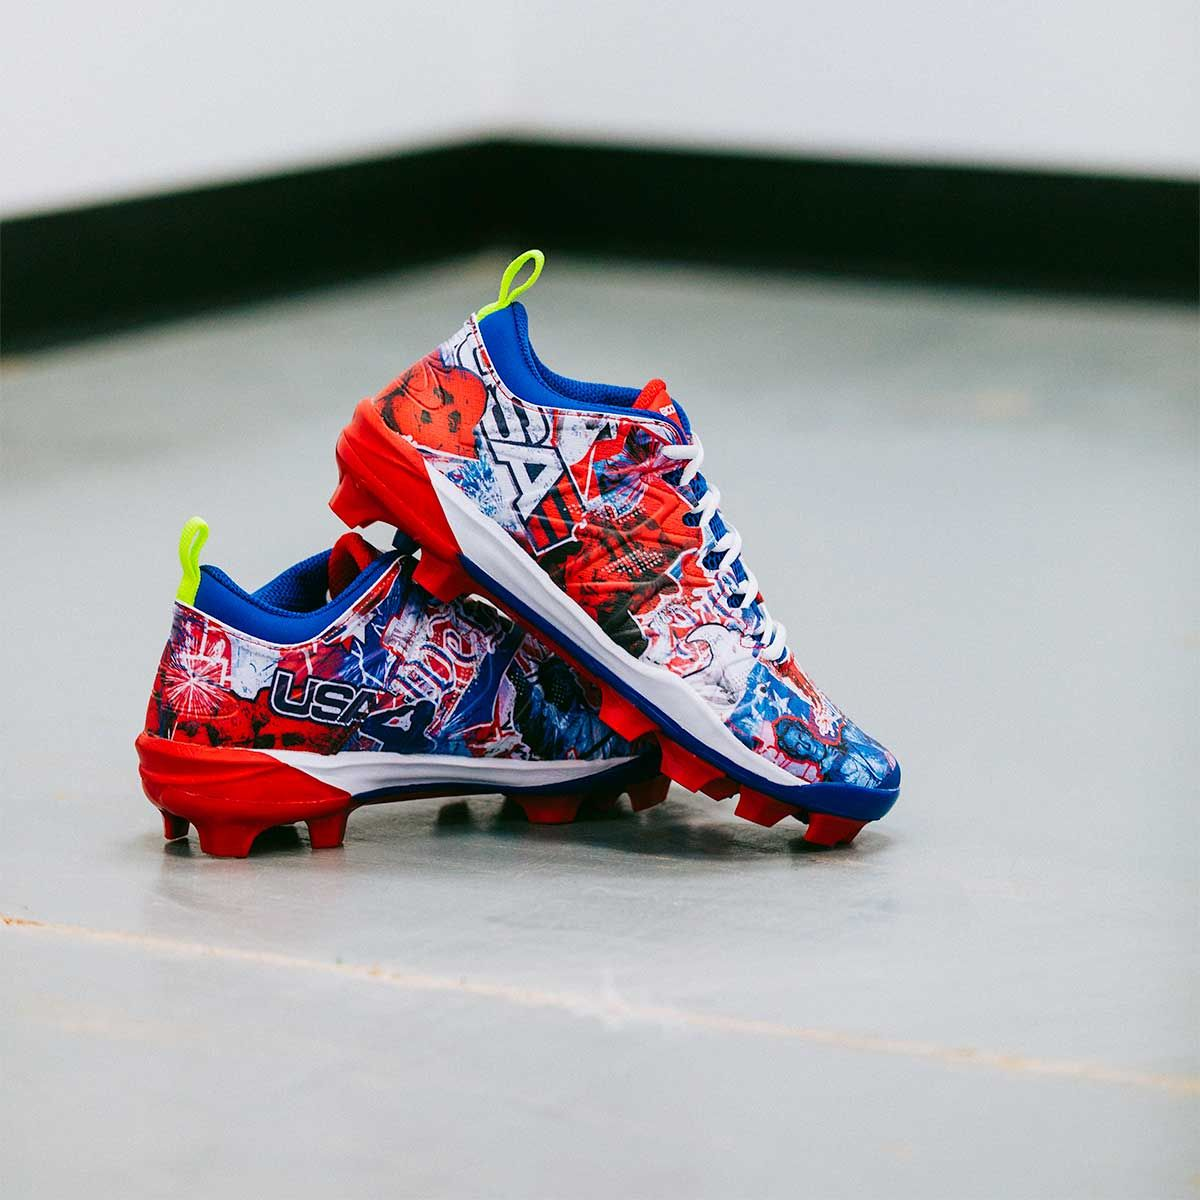 b9af8b6560ea5 You can always count on us to have a USA themed shoe to catch your eye